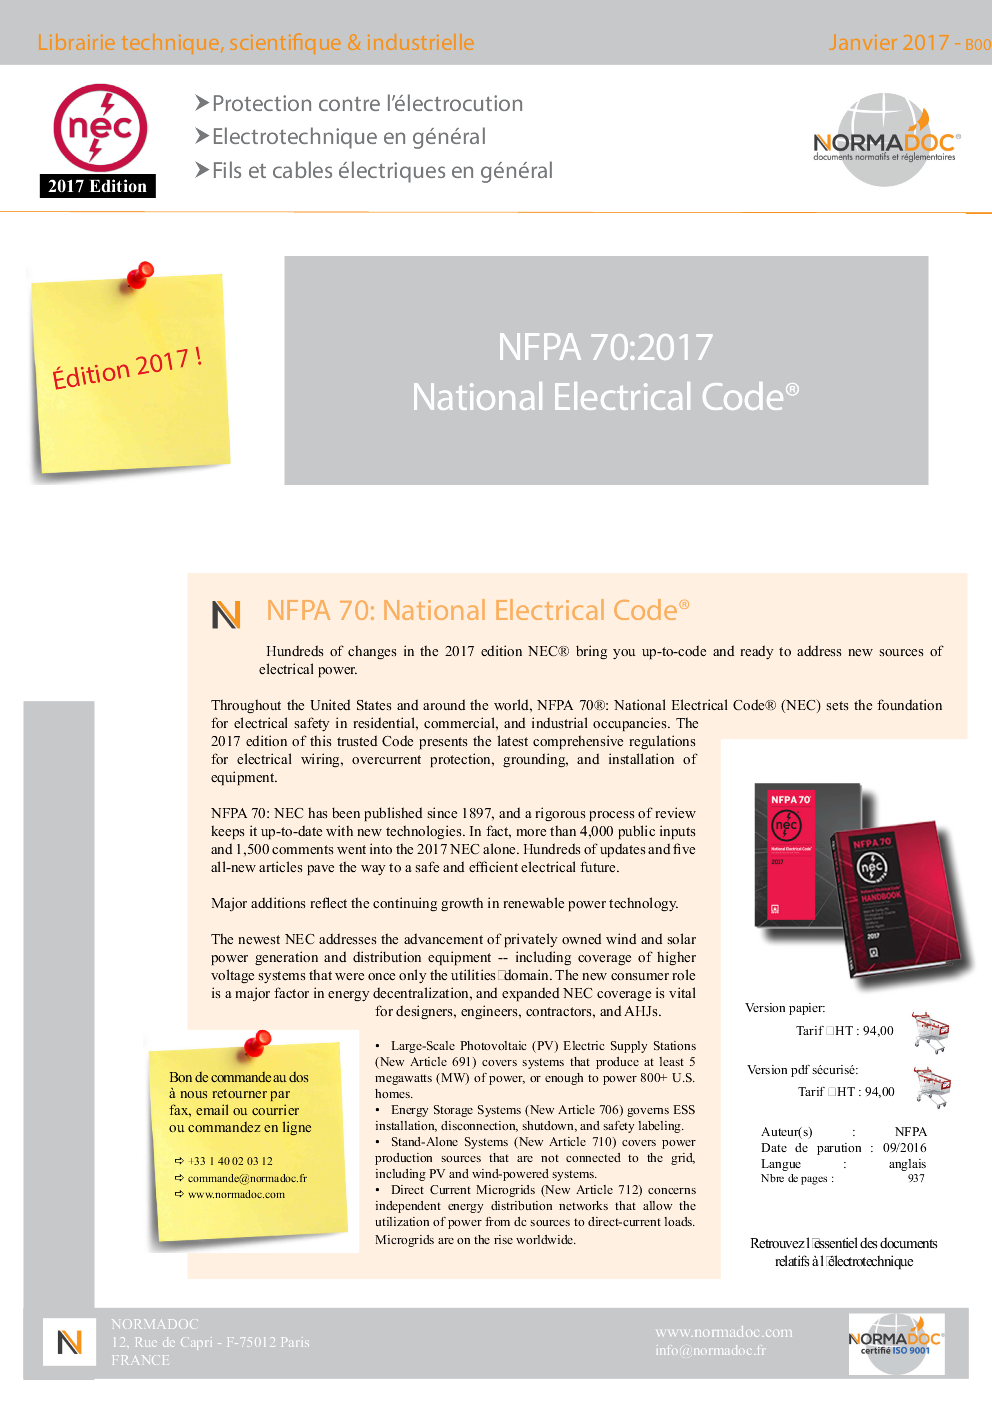 NFPA 70 : National Electrical Code (NEC) Edition 2017